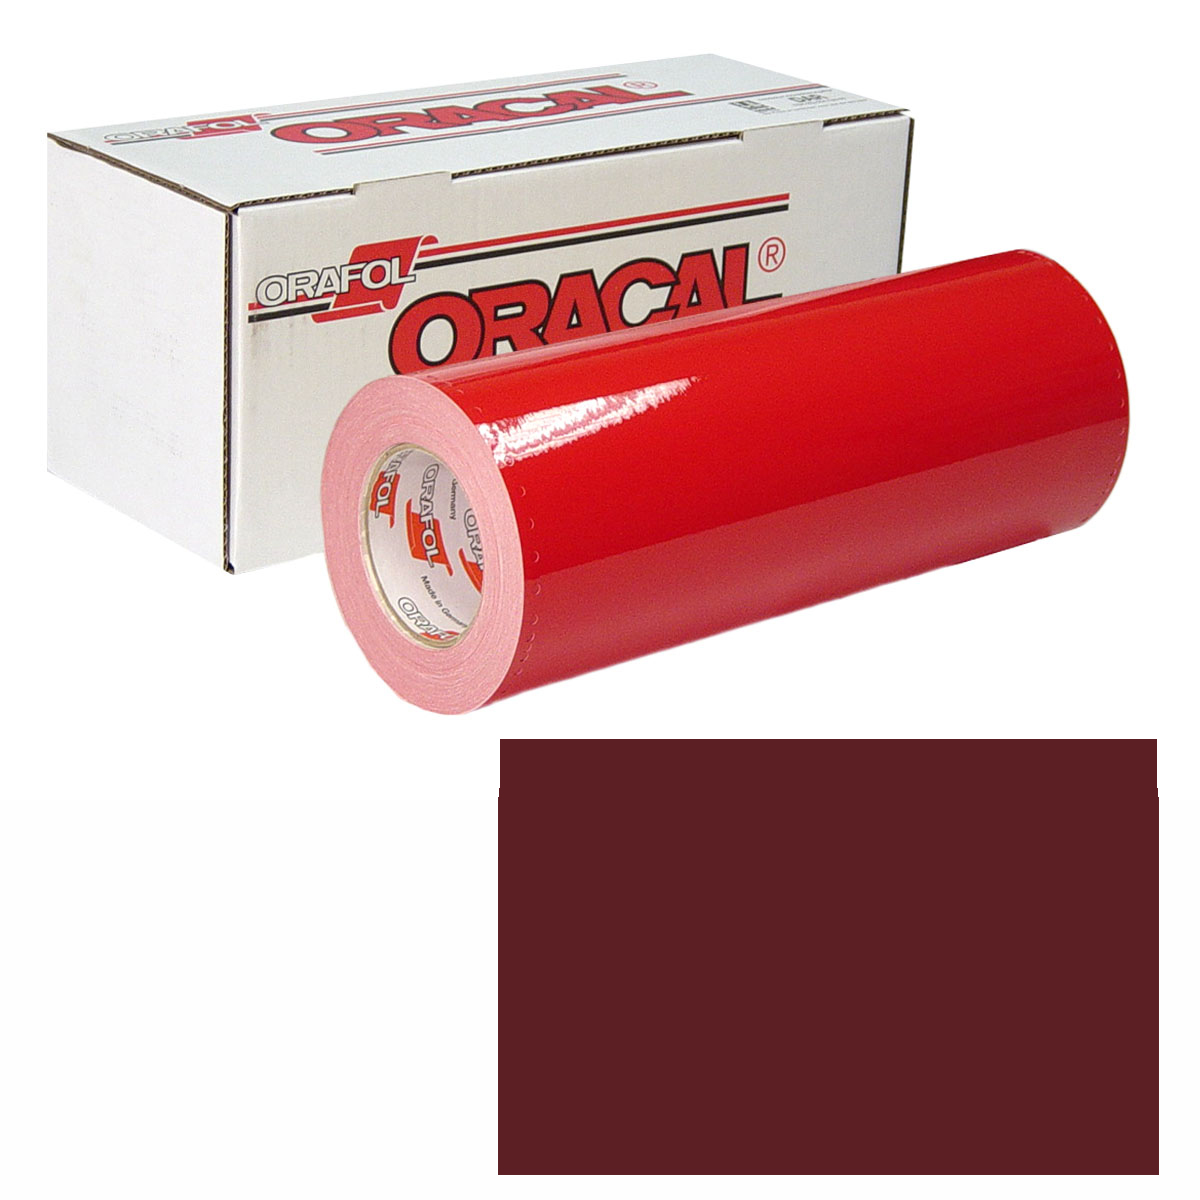 ORACAL 951M 15In X 50Yd 369 Red Brown